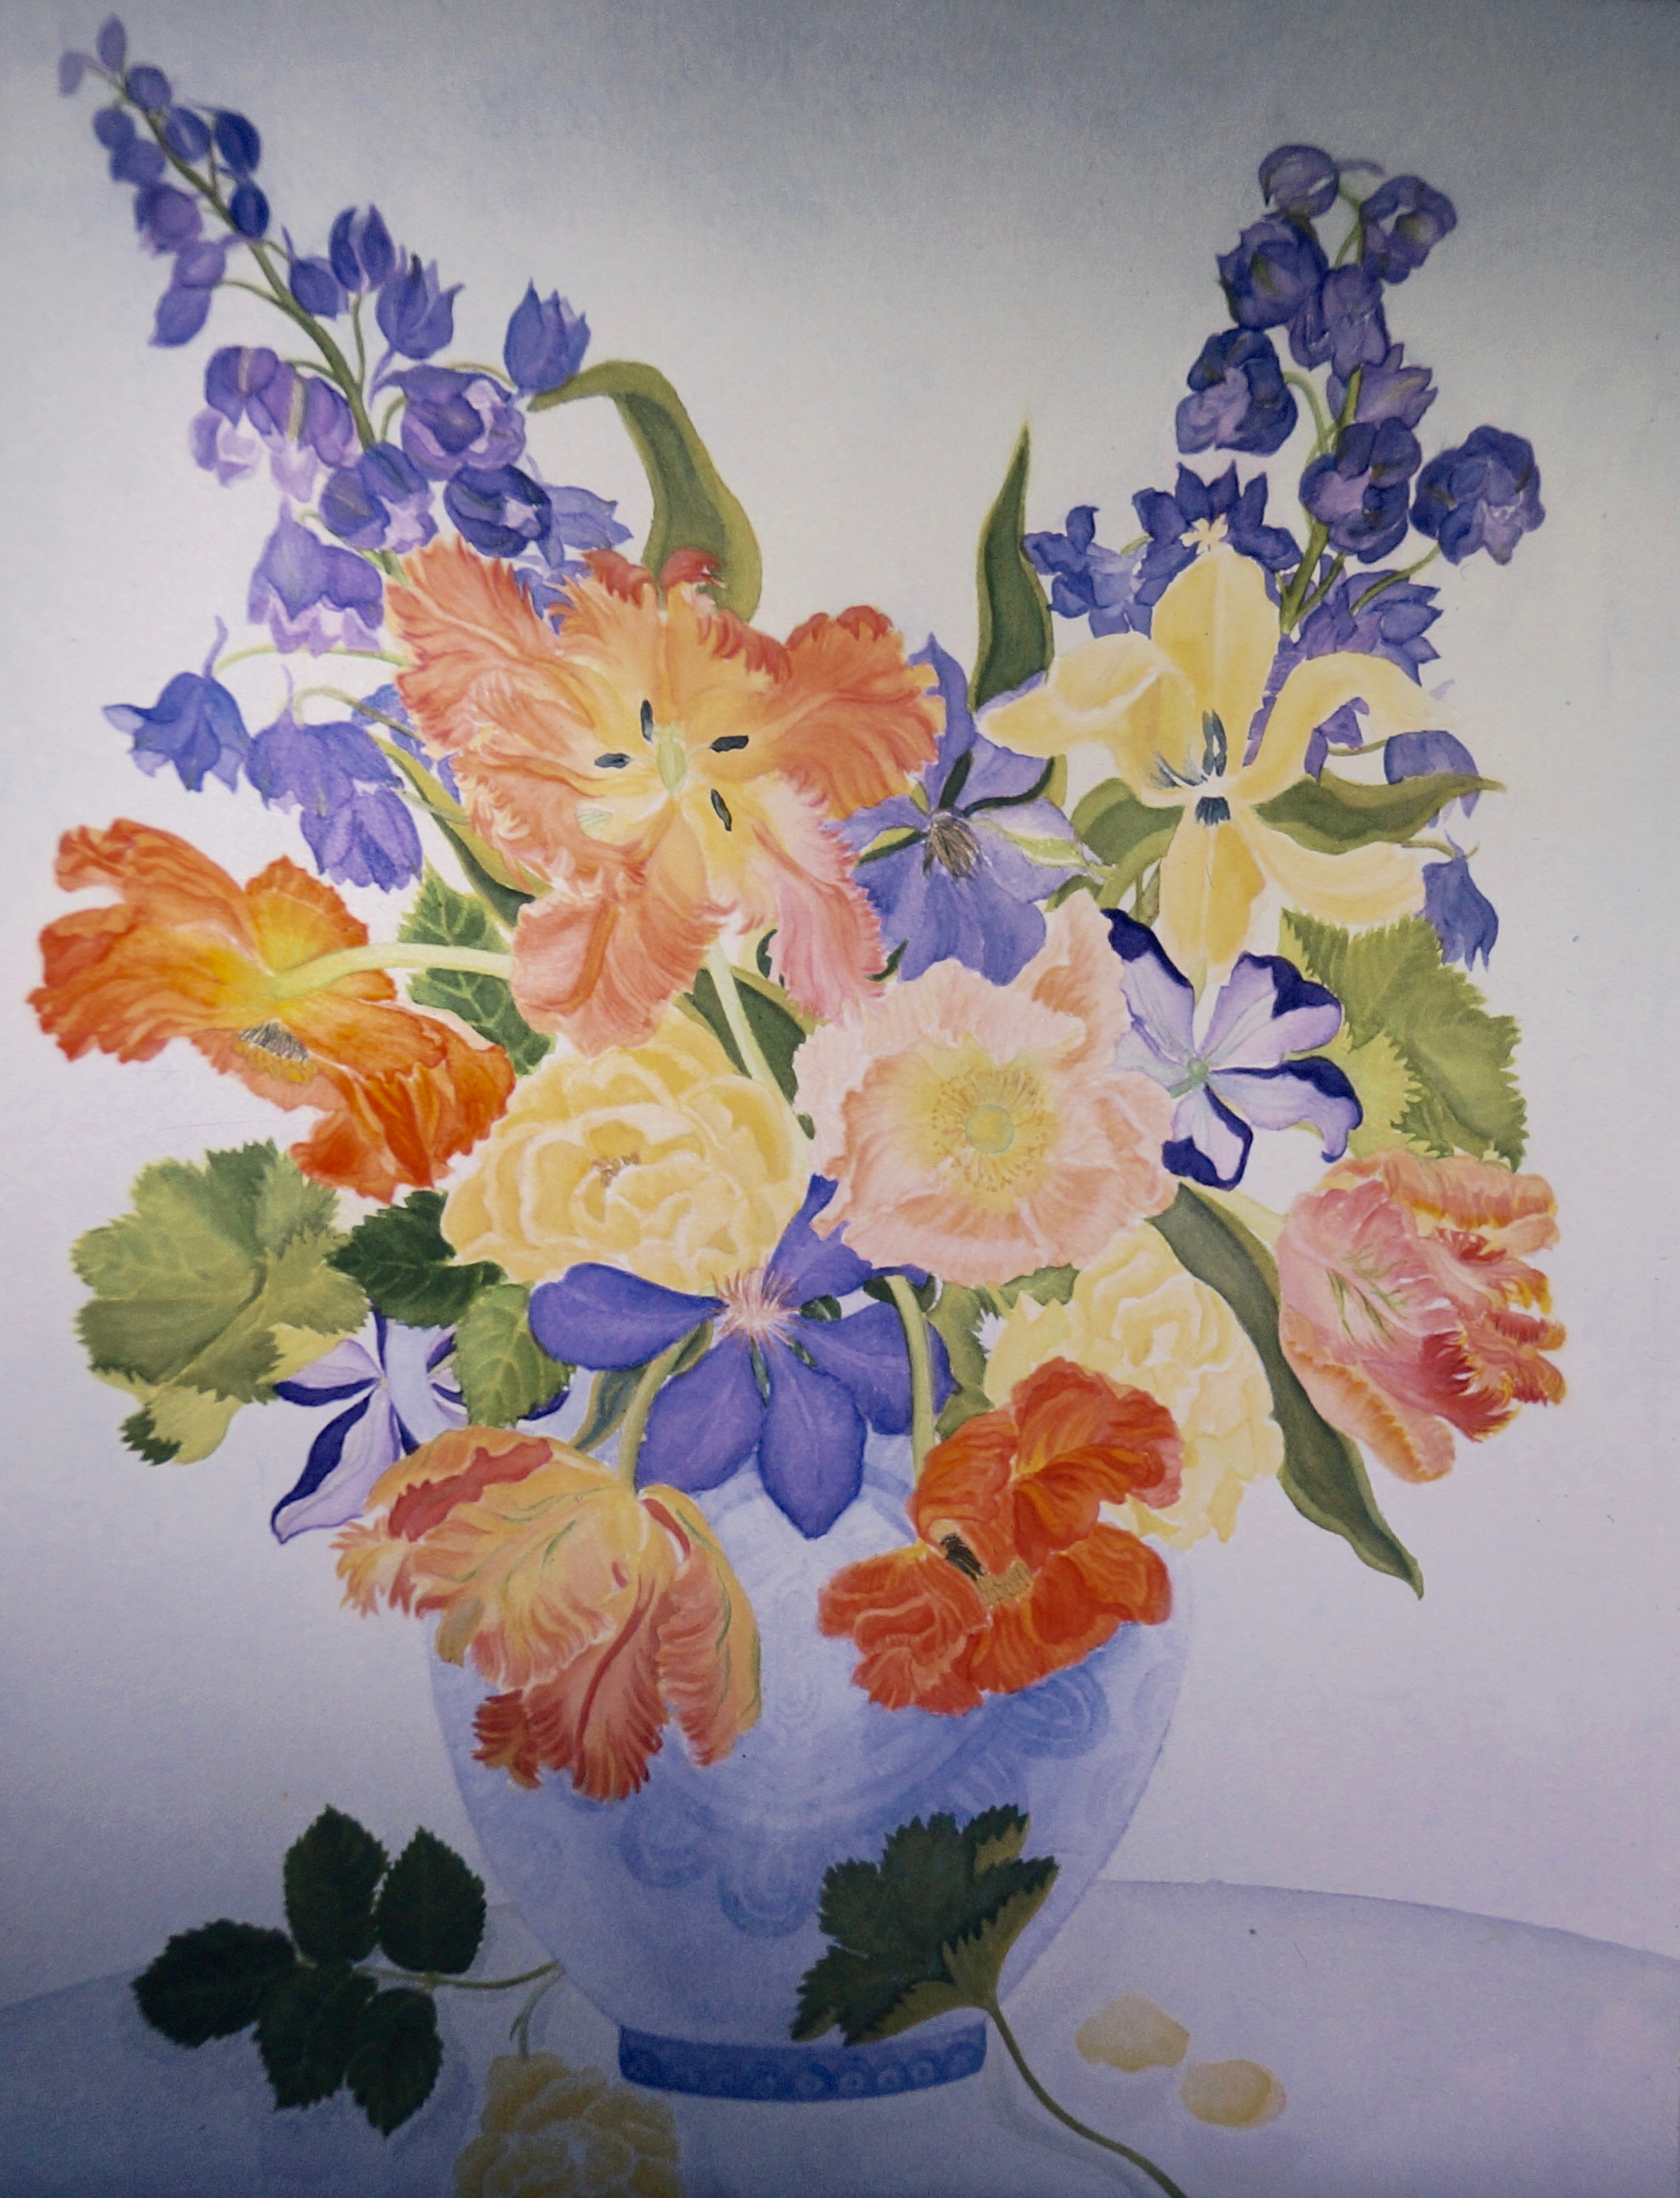 Orange Parrots, Delphinium